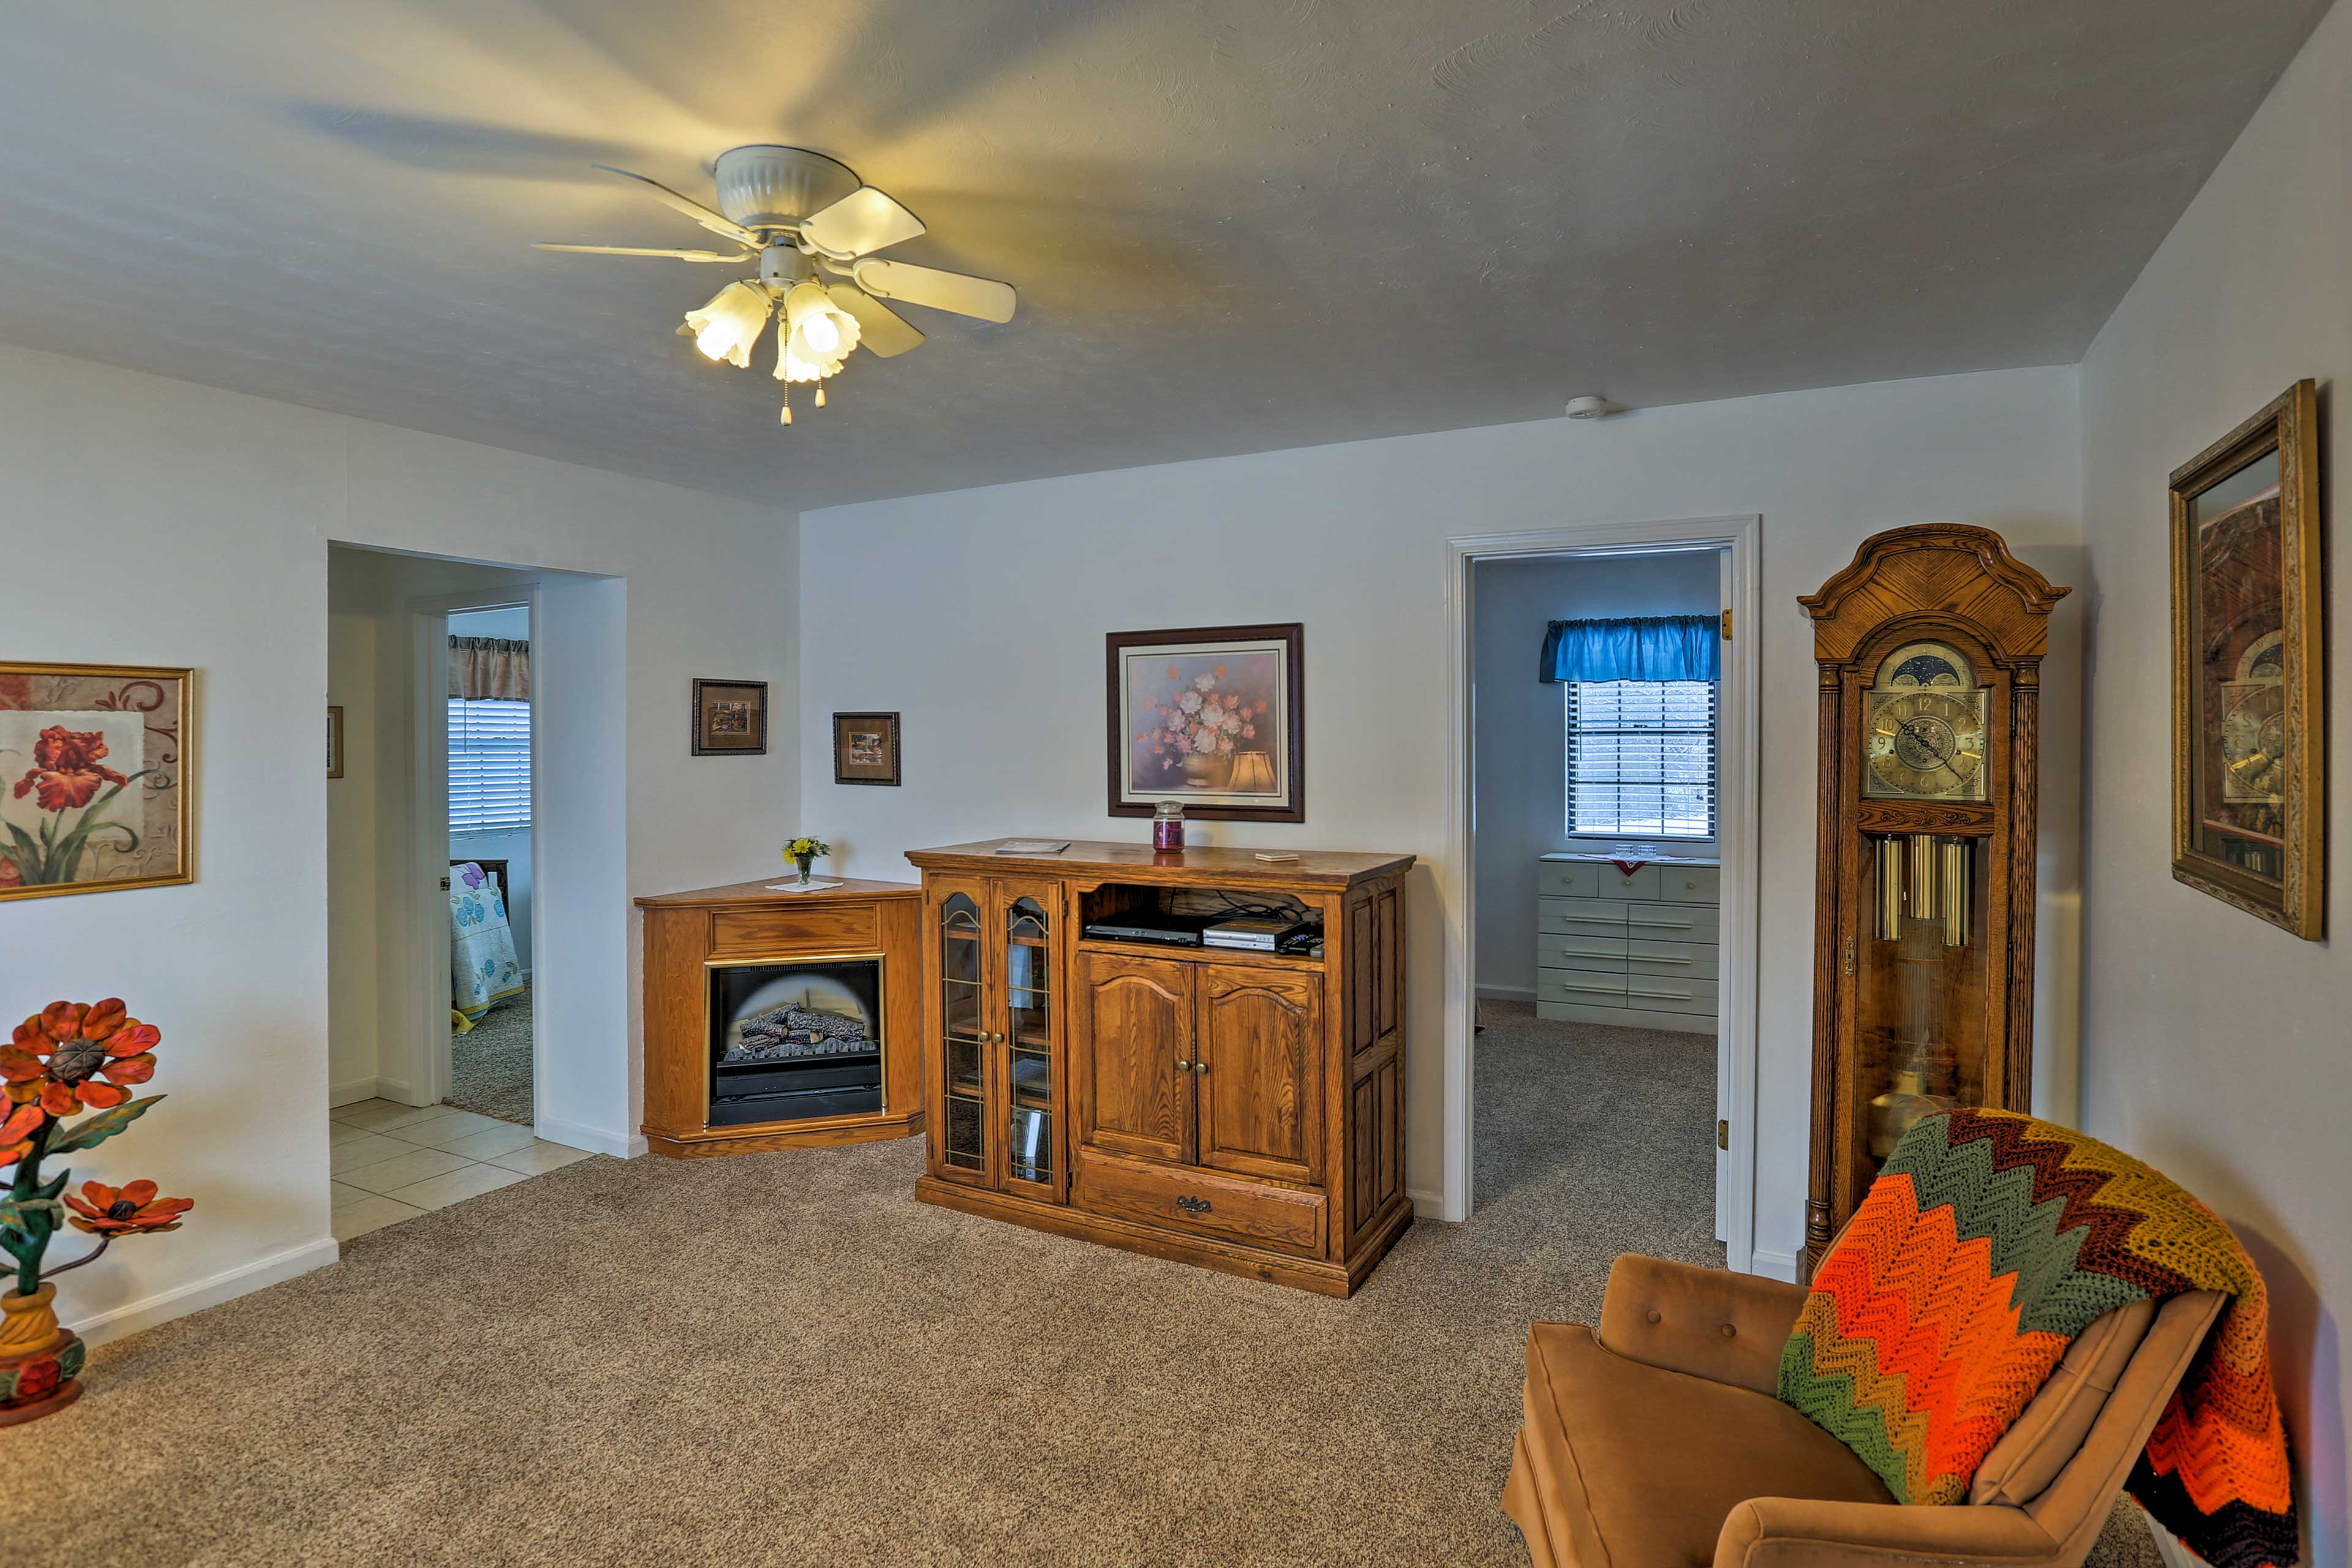 Plan your next country escape to this remote 2-bed, 2-bath house in Ironton.